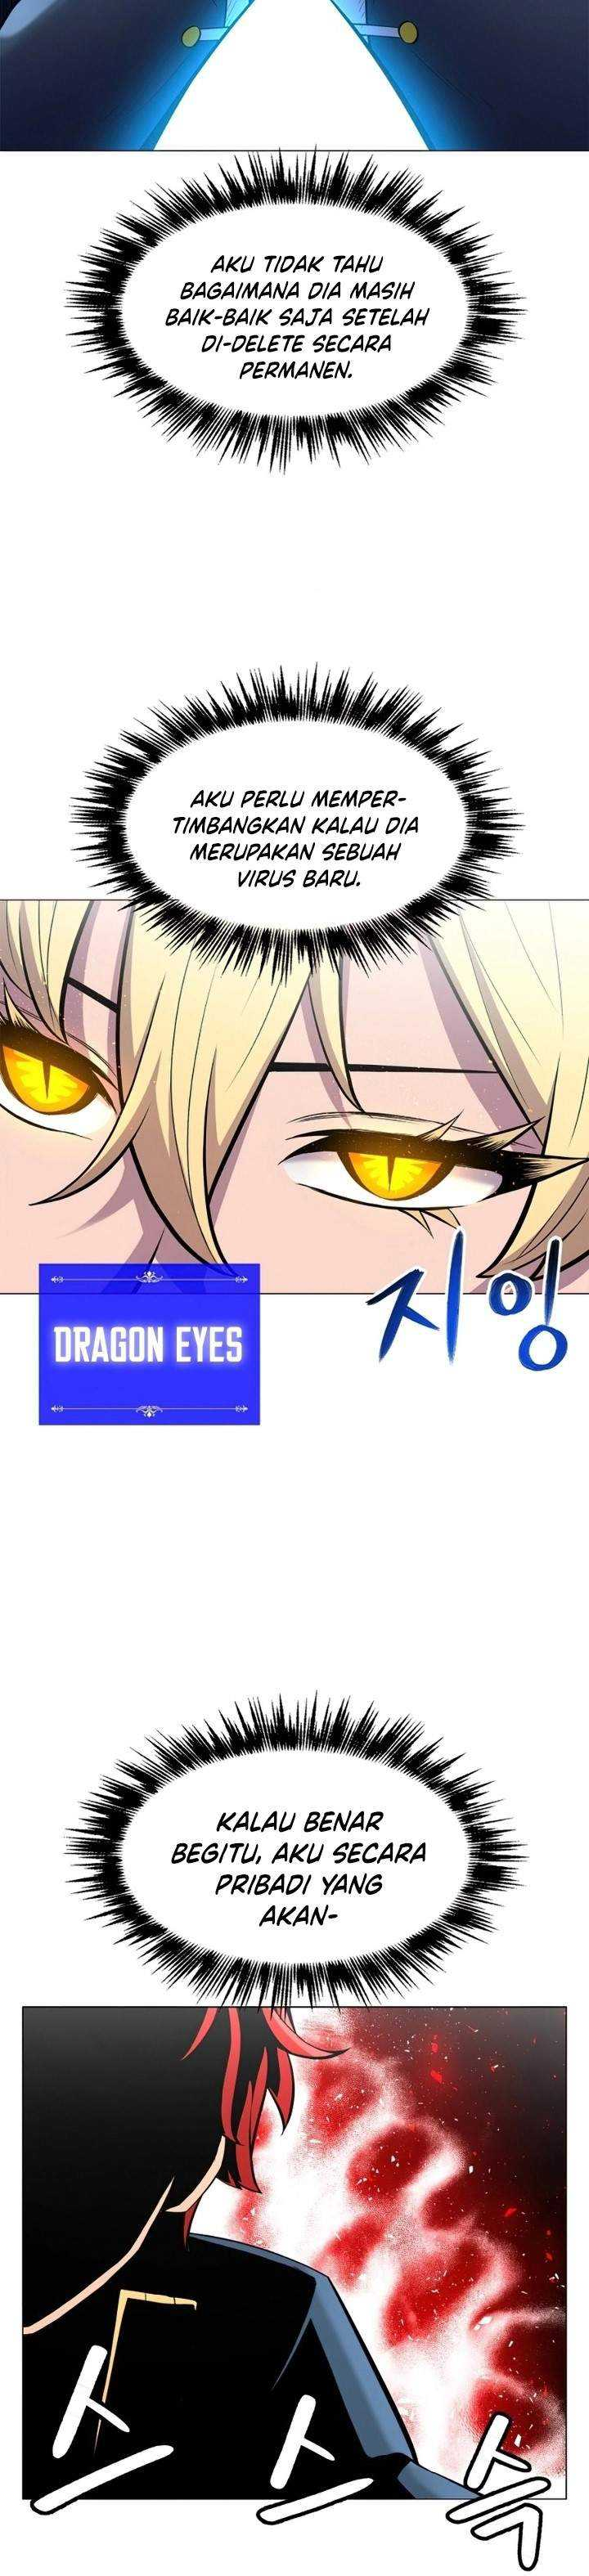 Updater Chapter 46